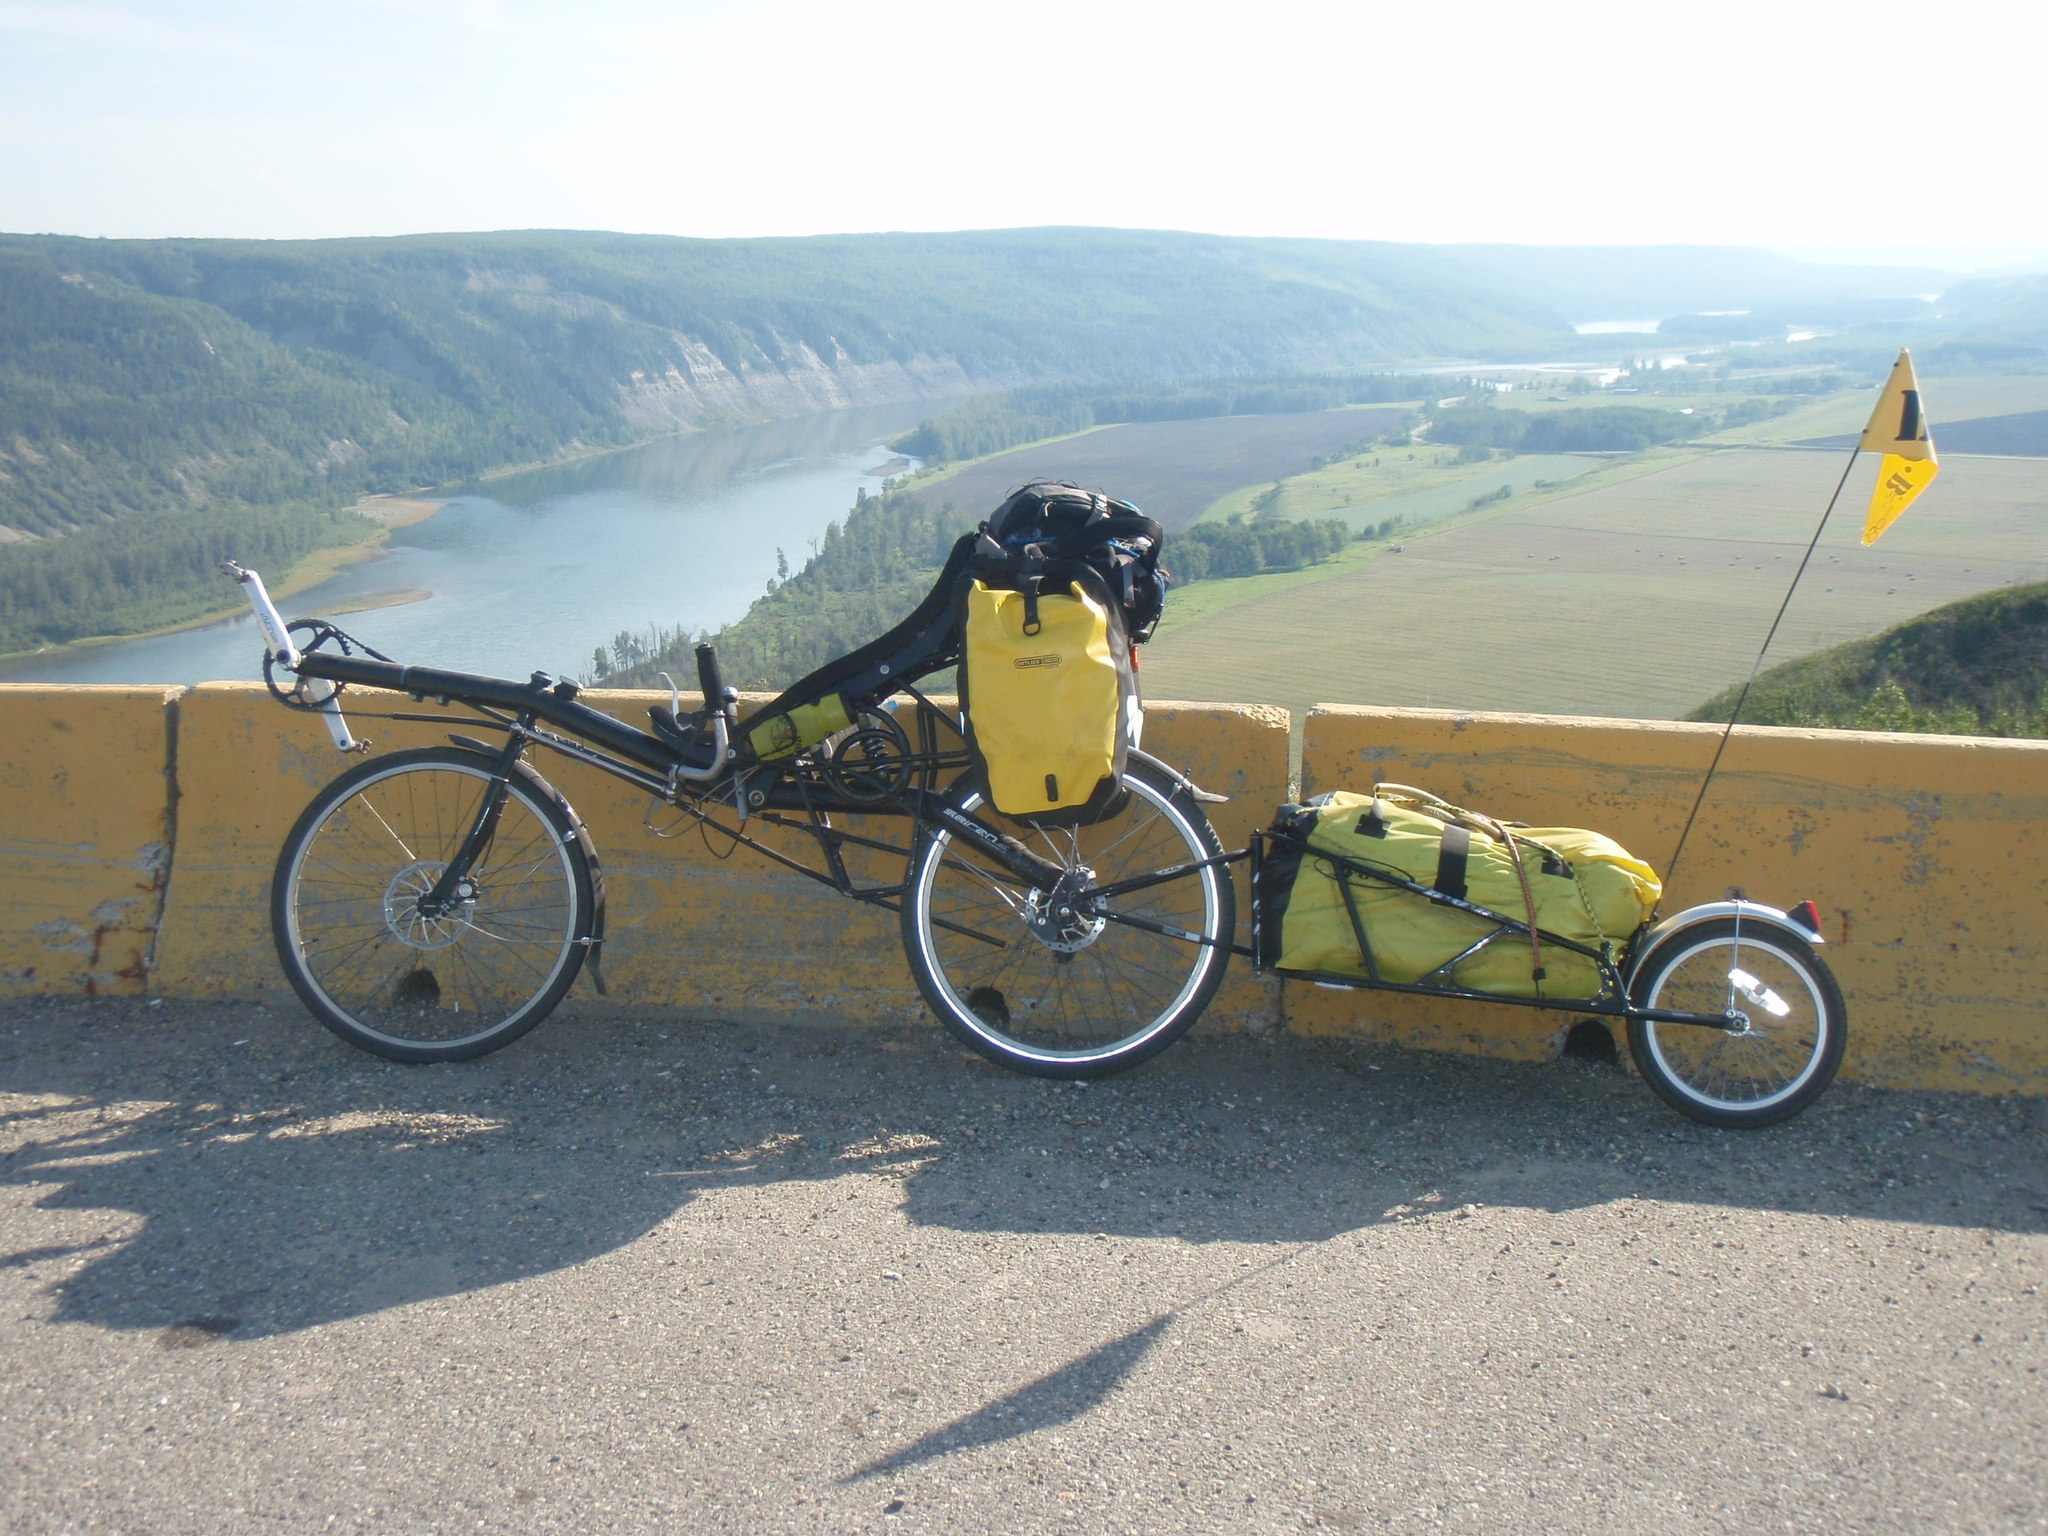 At the Peace River Overlook